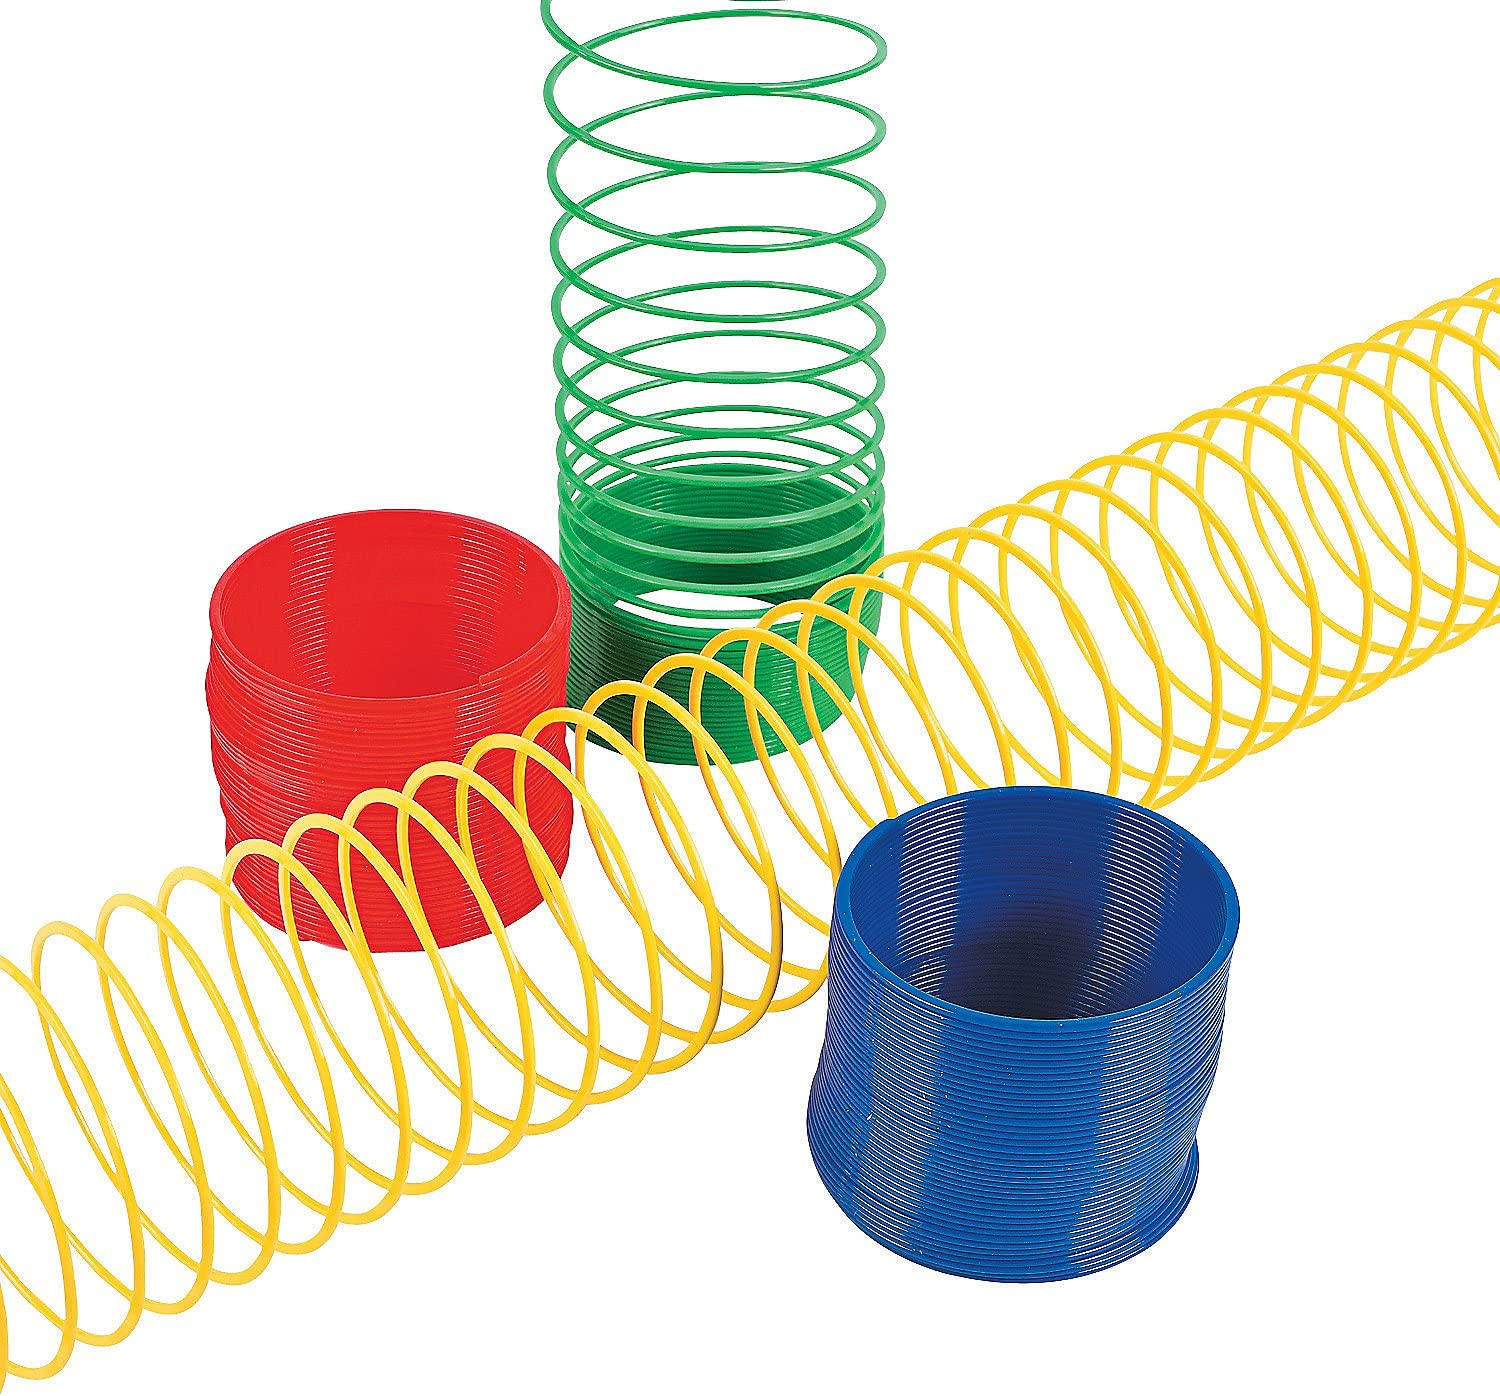 Fun Express Plastic Magic Spring Compare to Slinky and Save Novelty 1 Dozen Assorted Colors